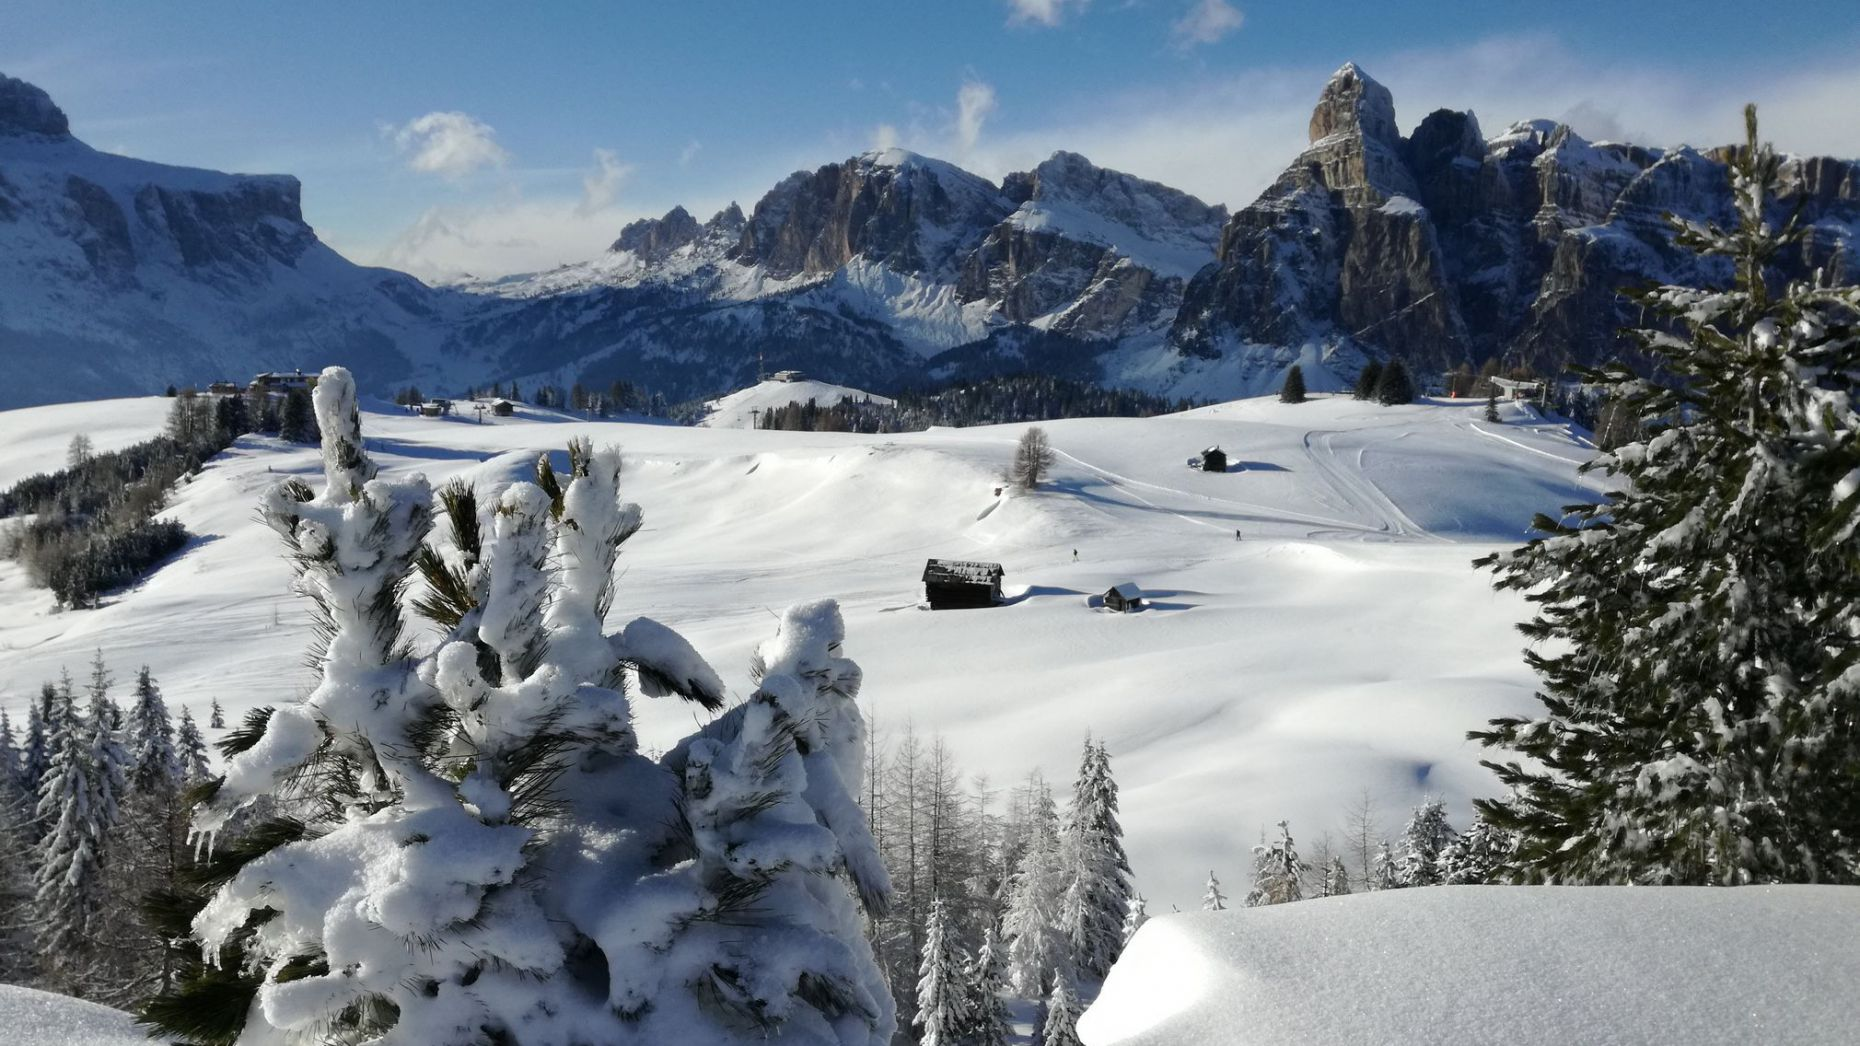 Image: The Dolomites